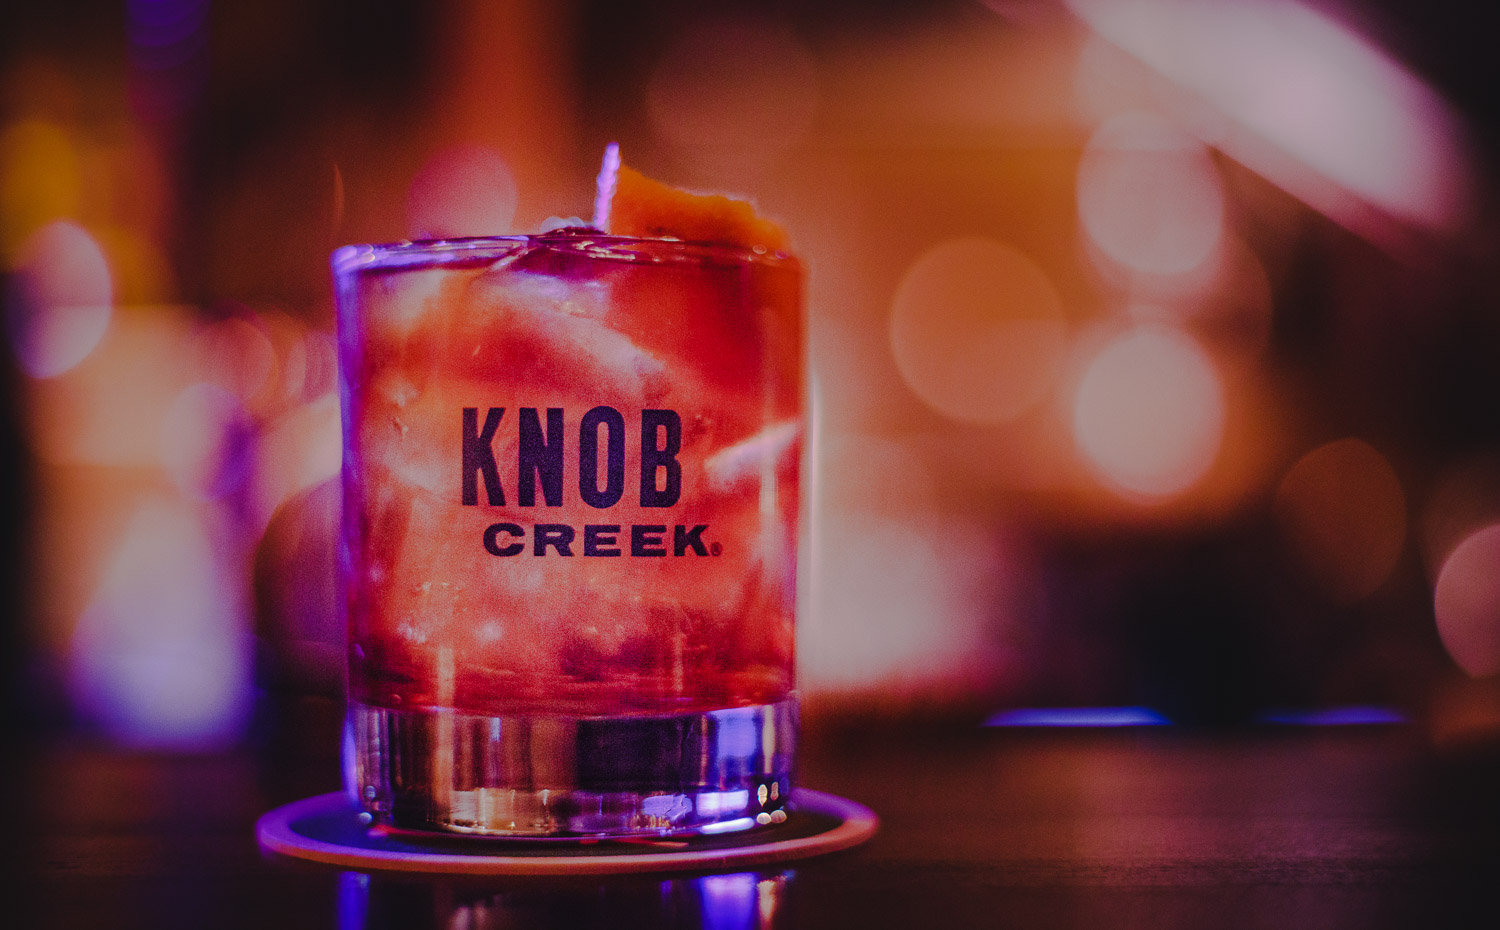 The fifth ticket knob creek